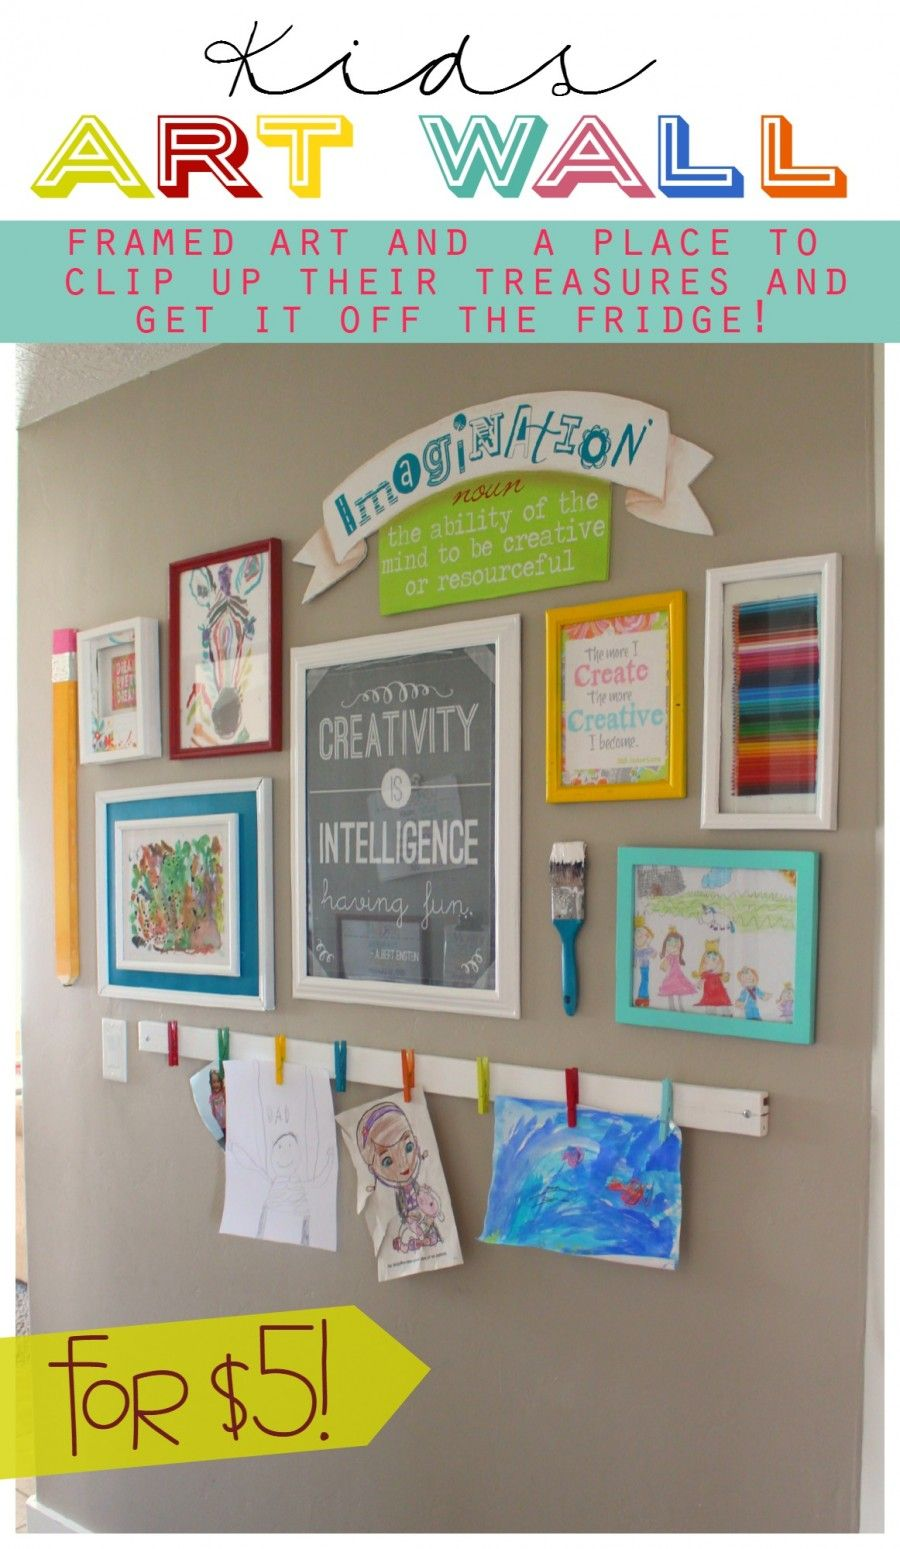 Superb Kids Art Gallery Wall | Hereu0027s The Perfect Way To Get Your Kidsu0027 Artwork  Off The Fridge And Decorate Your Walls!